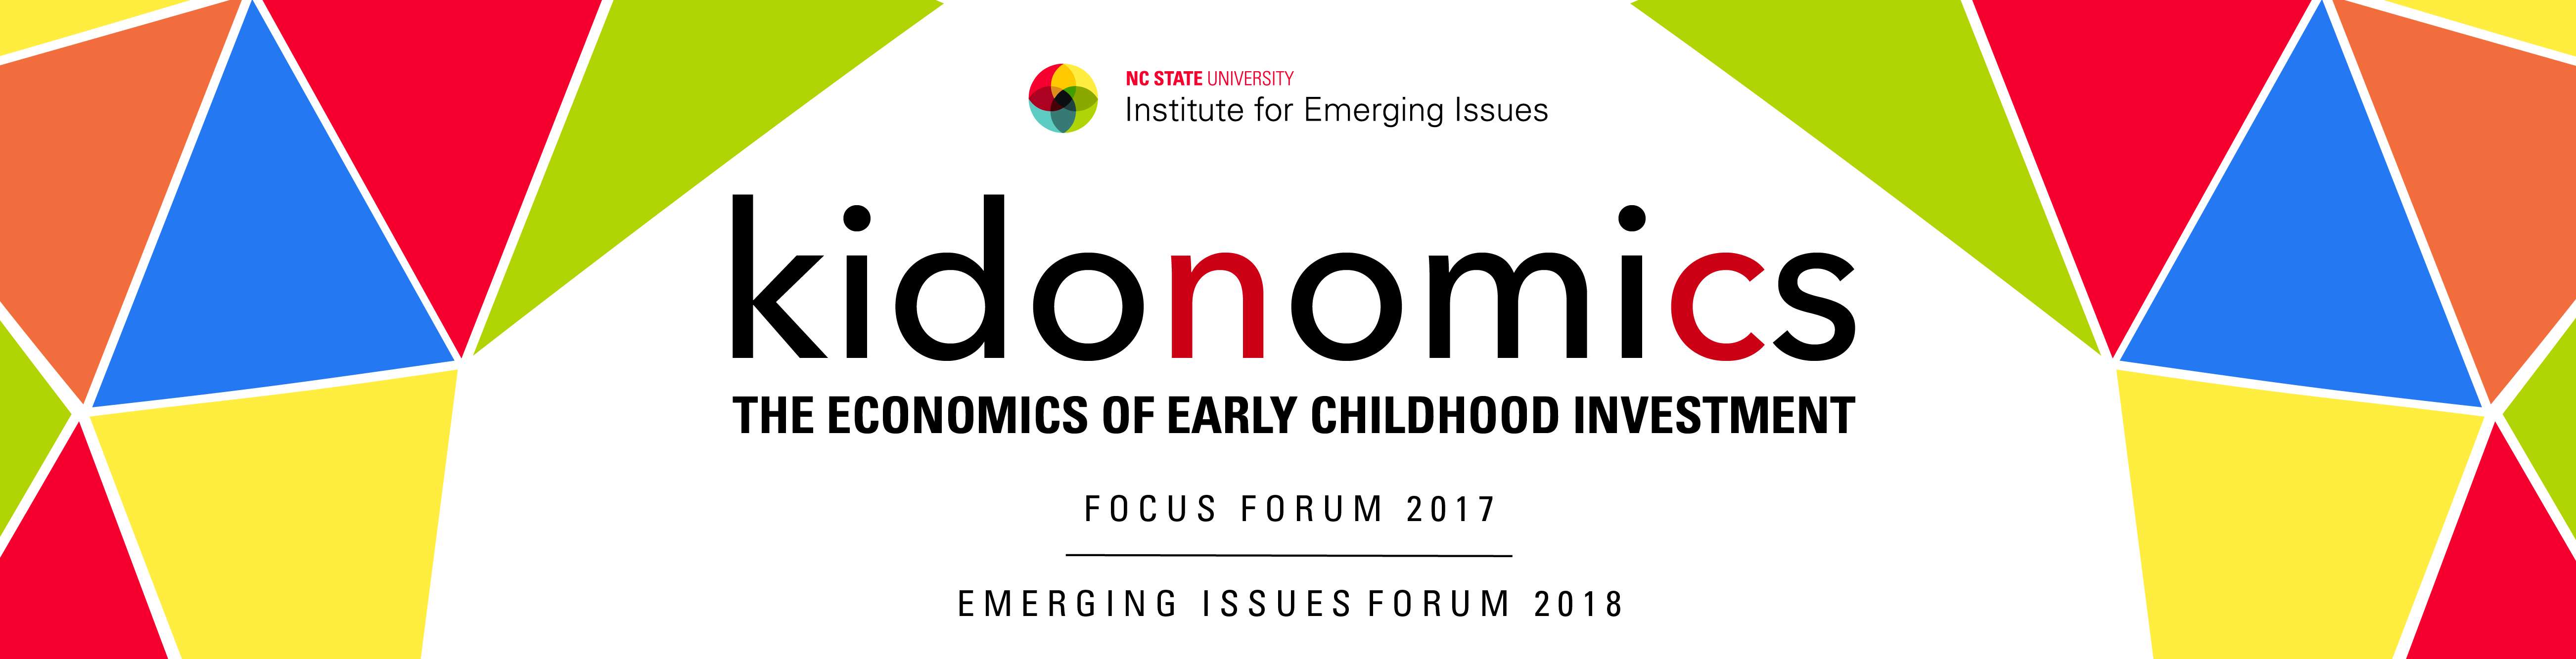 kidonomics: The Economics of Early Childhood Investment